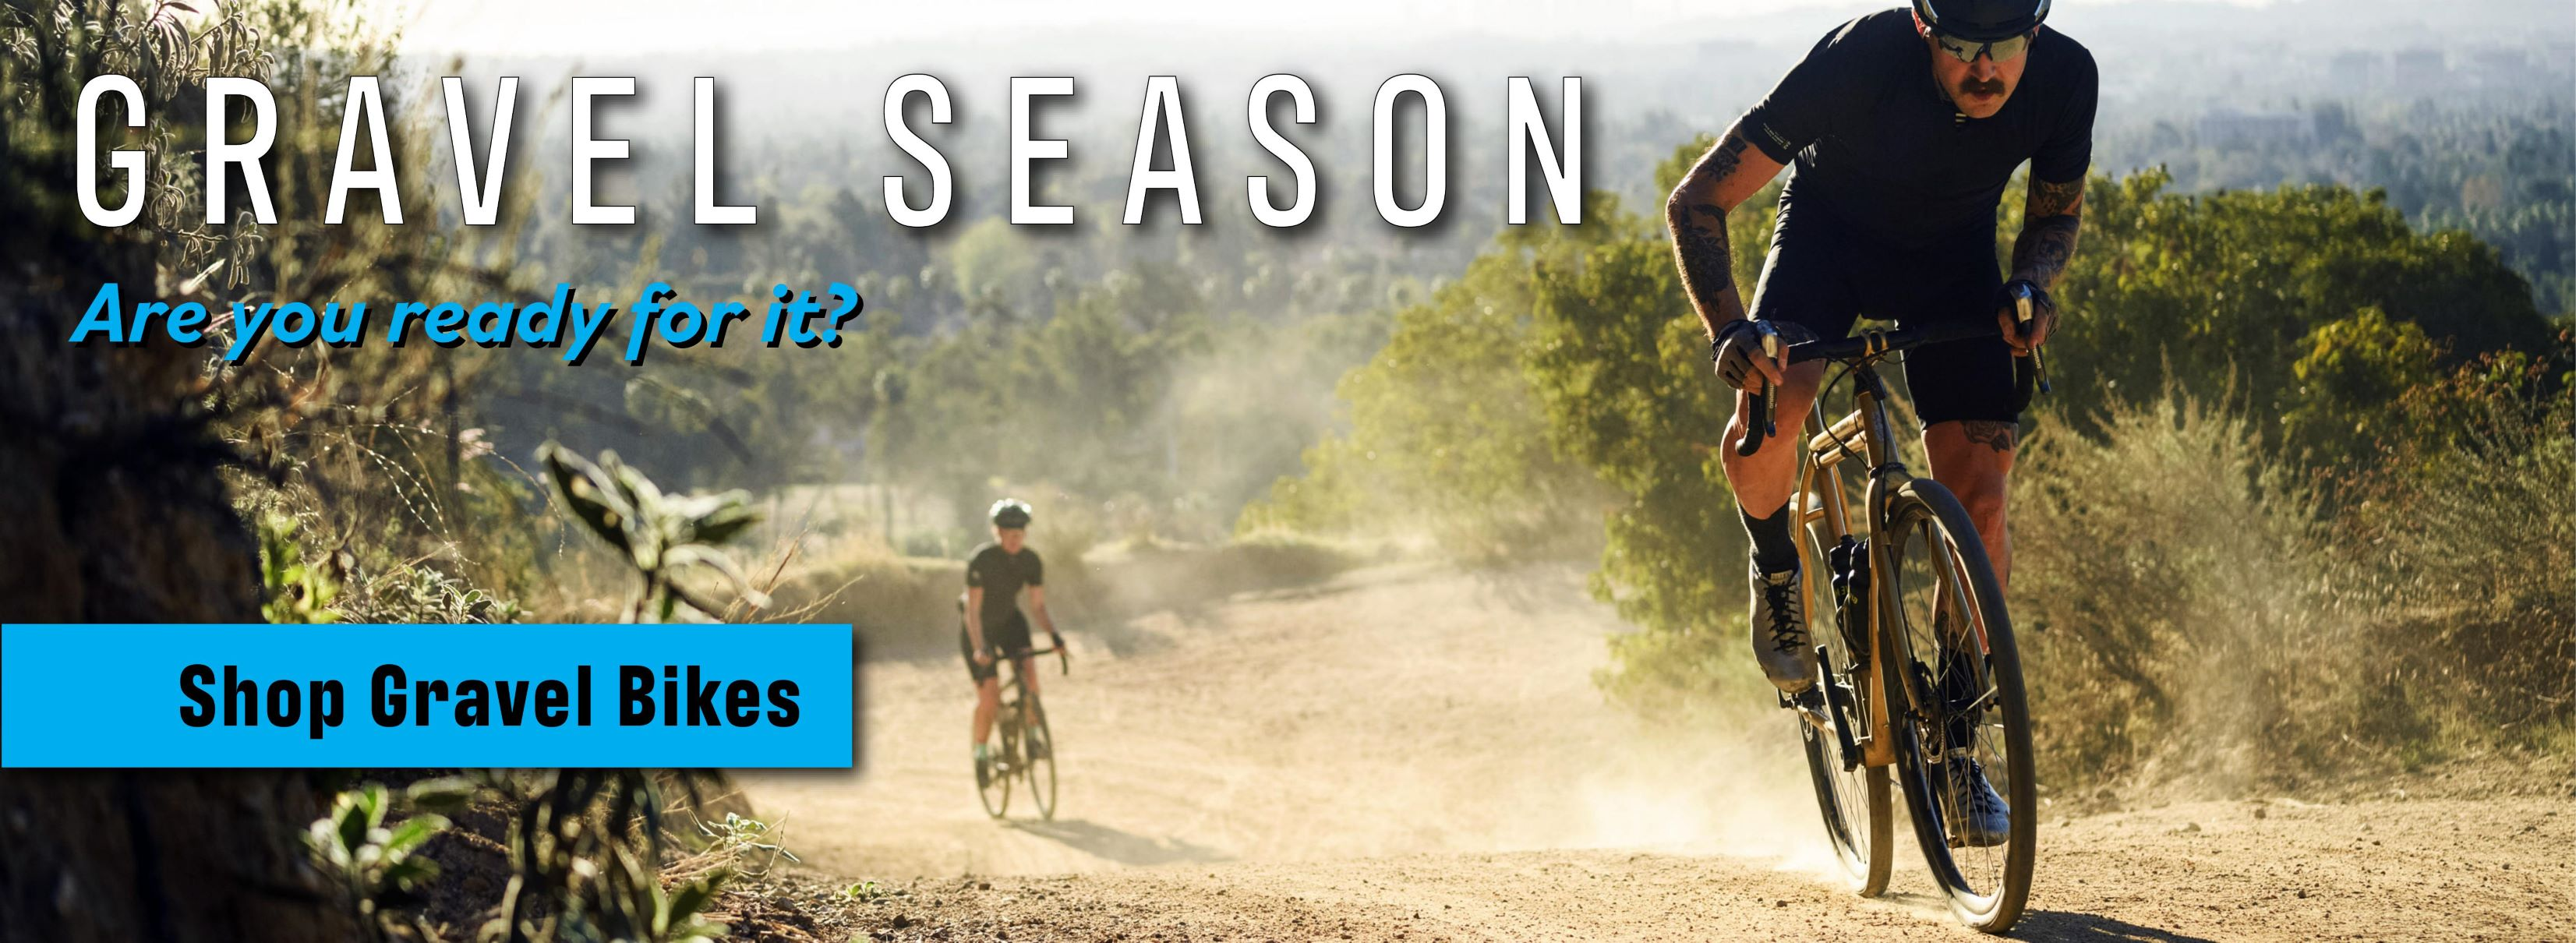 Gravel Bike Season - Are you ready for it? Shop Now